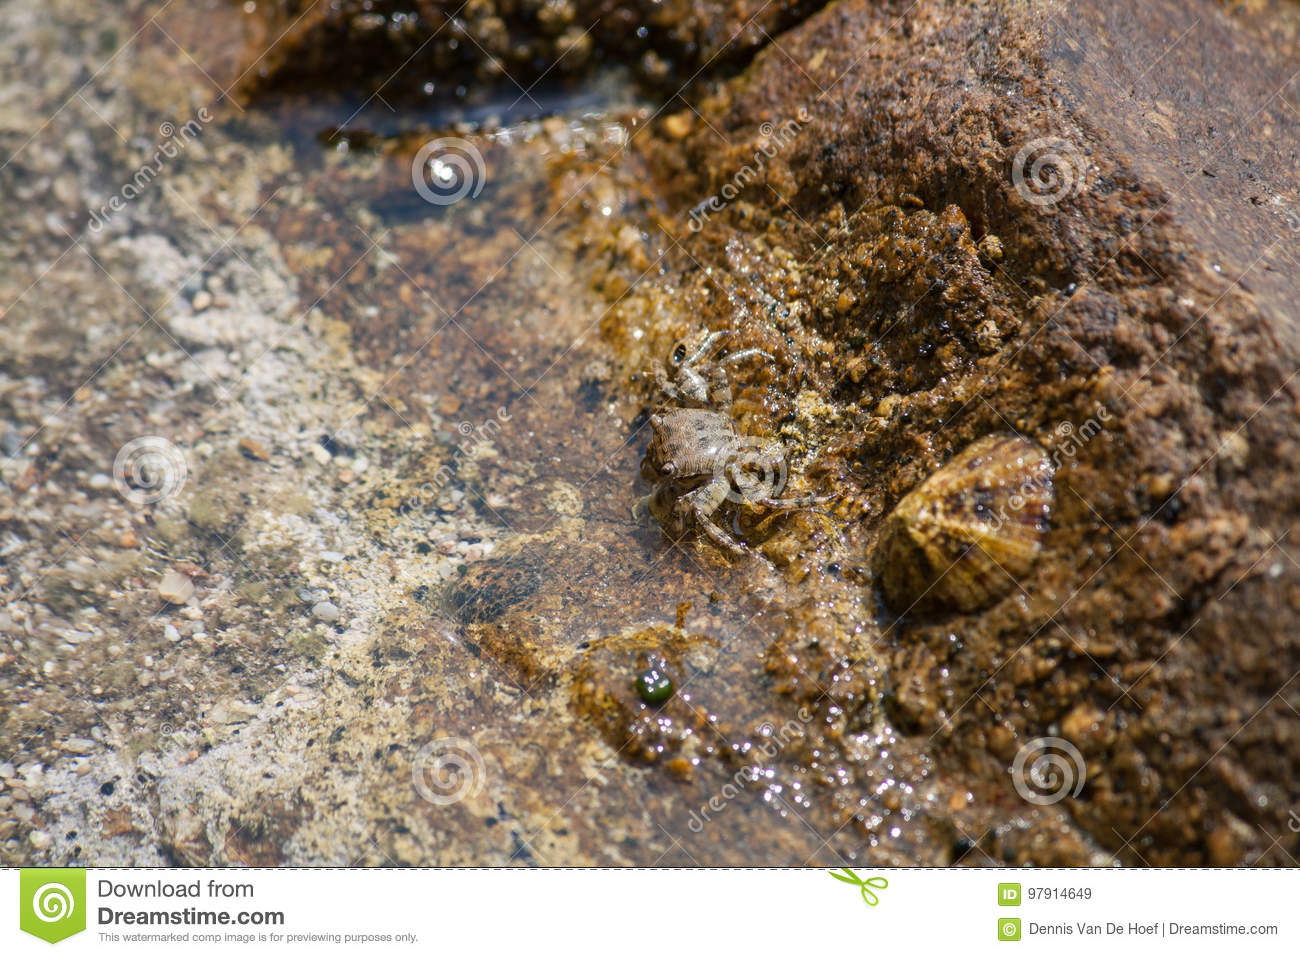 A small crab on stone on shore.